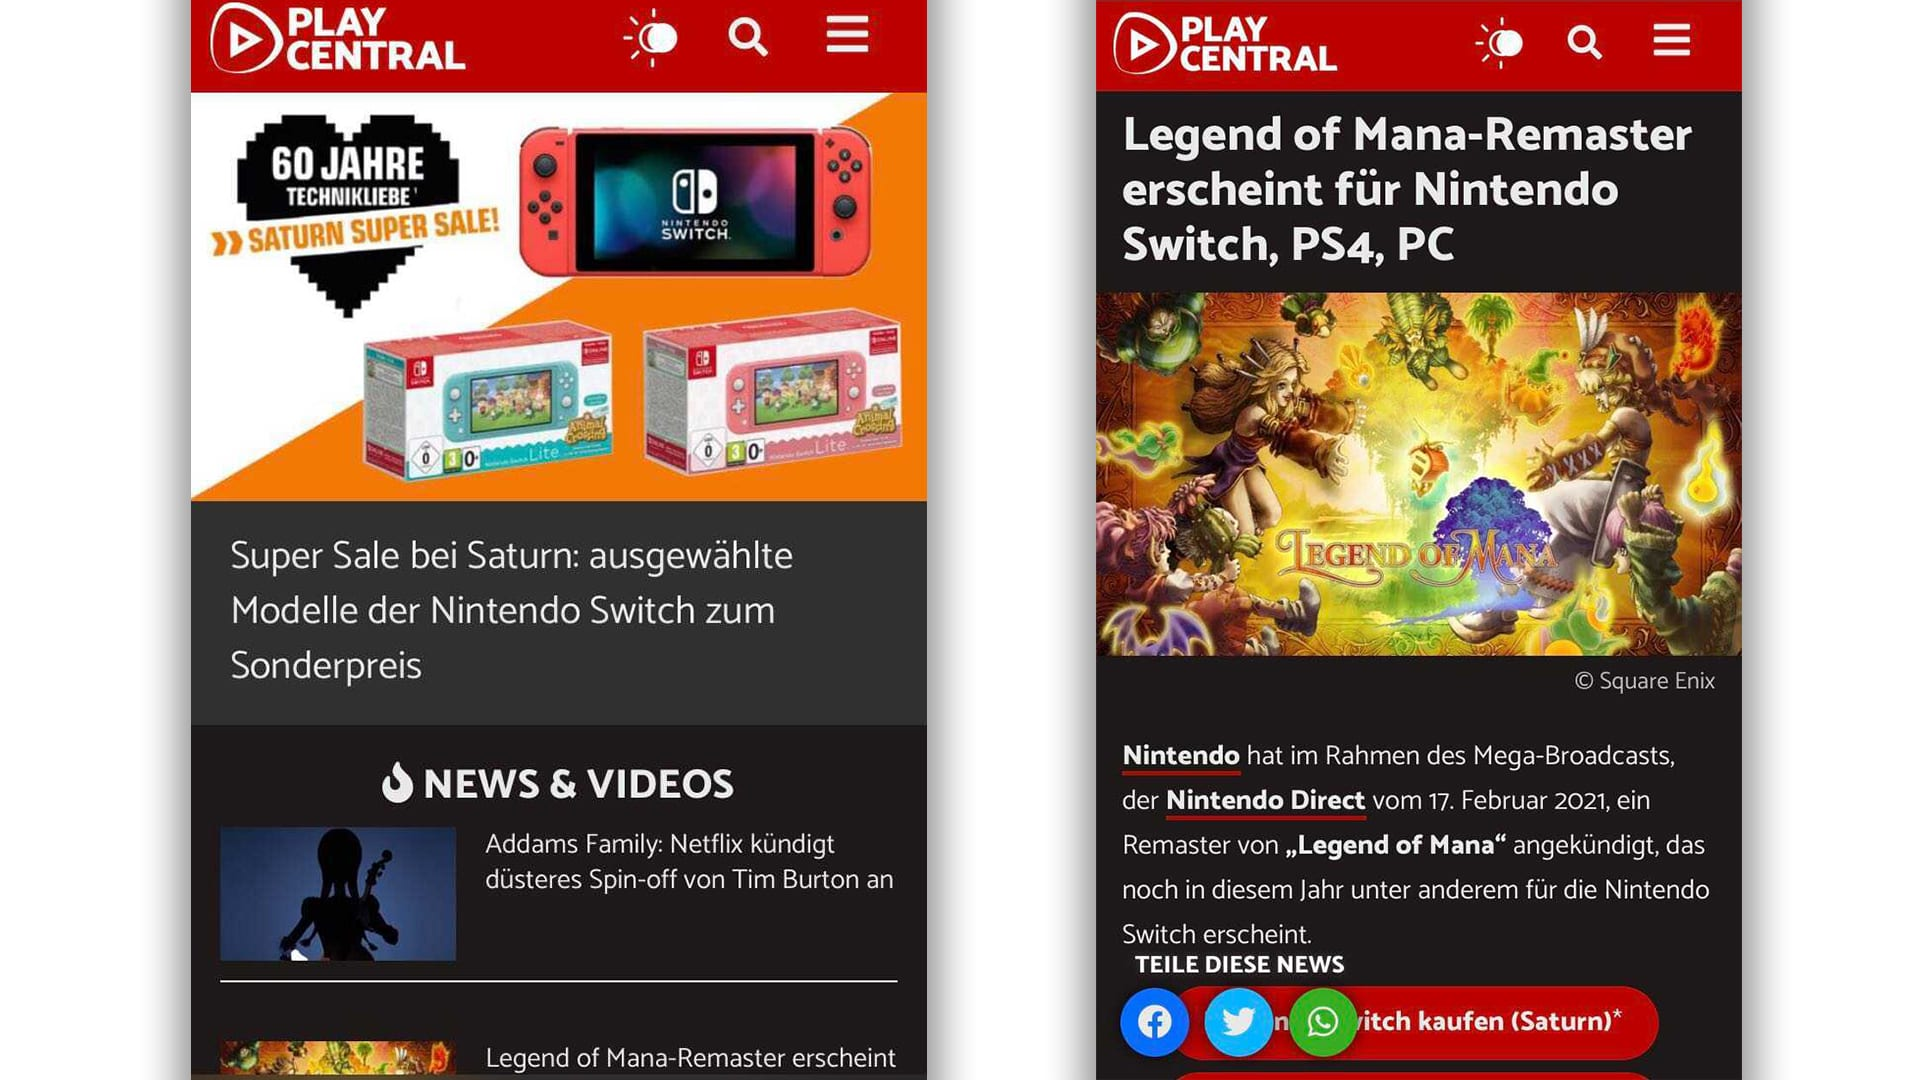 Mobile PlayCentral en mode sombre